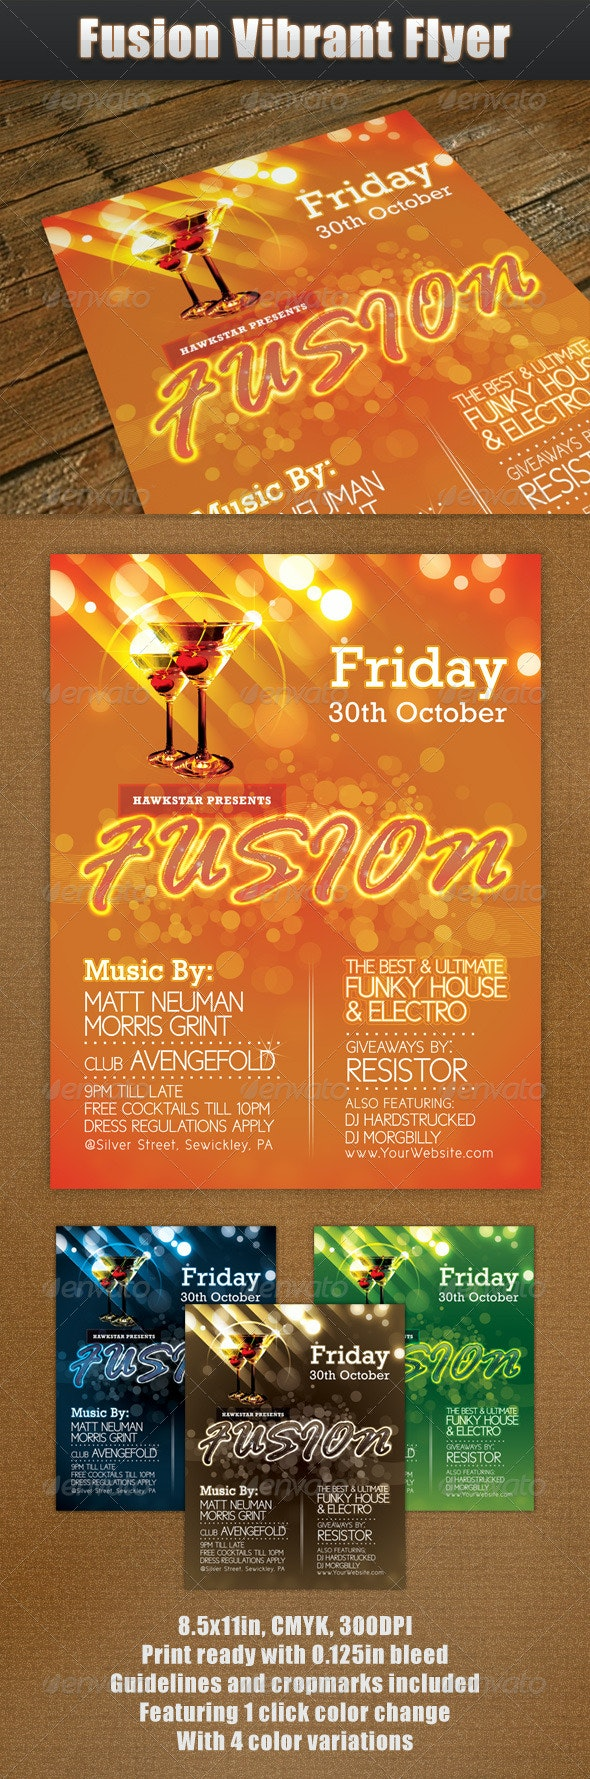 Fusion Vibrant Flyer - Clubs & Parties Events